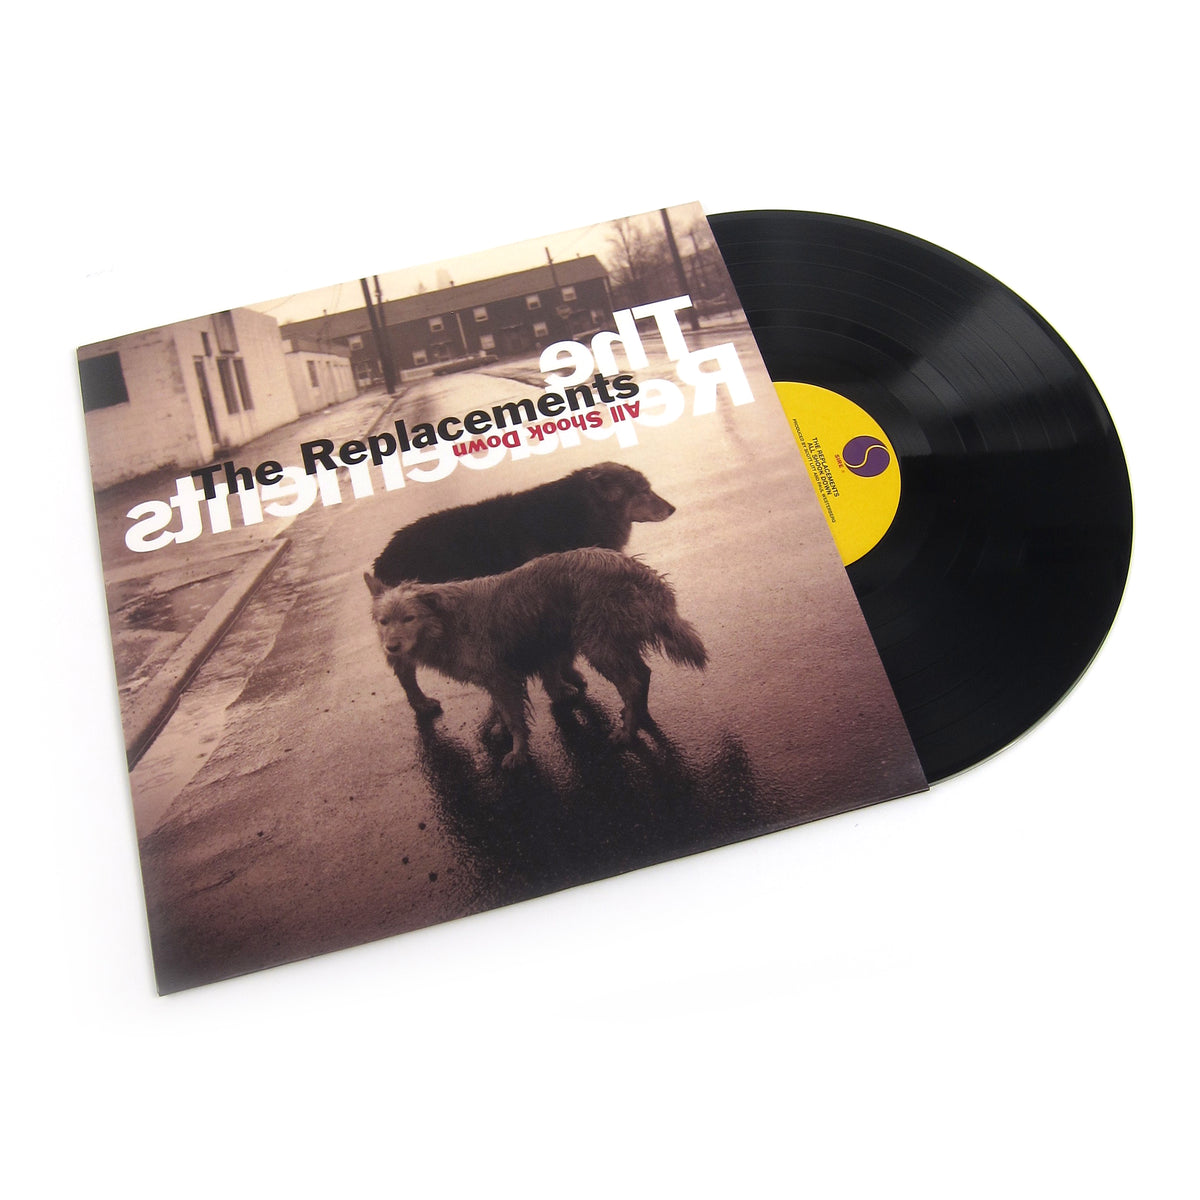 The Replacements: All Shook Down Vinyl LP